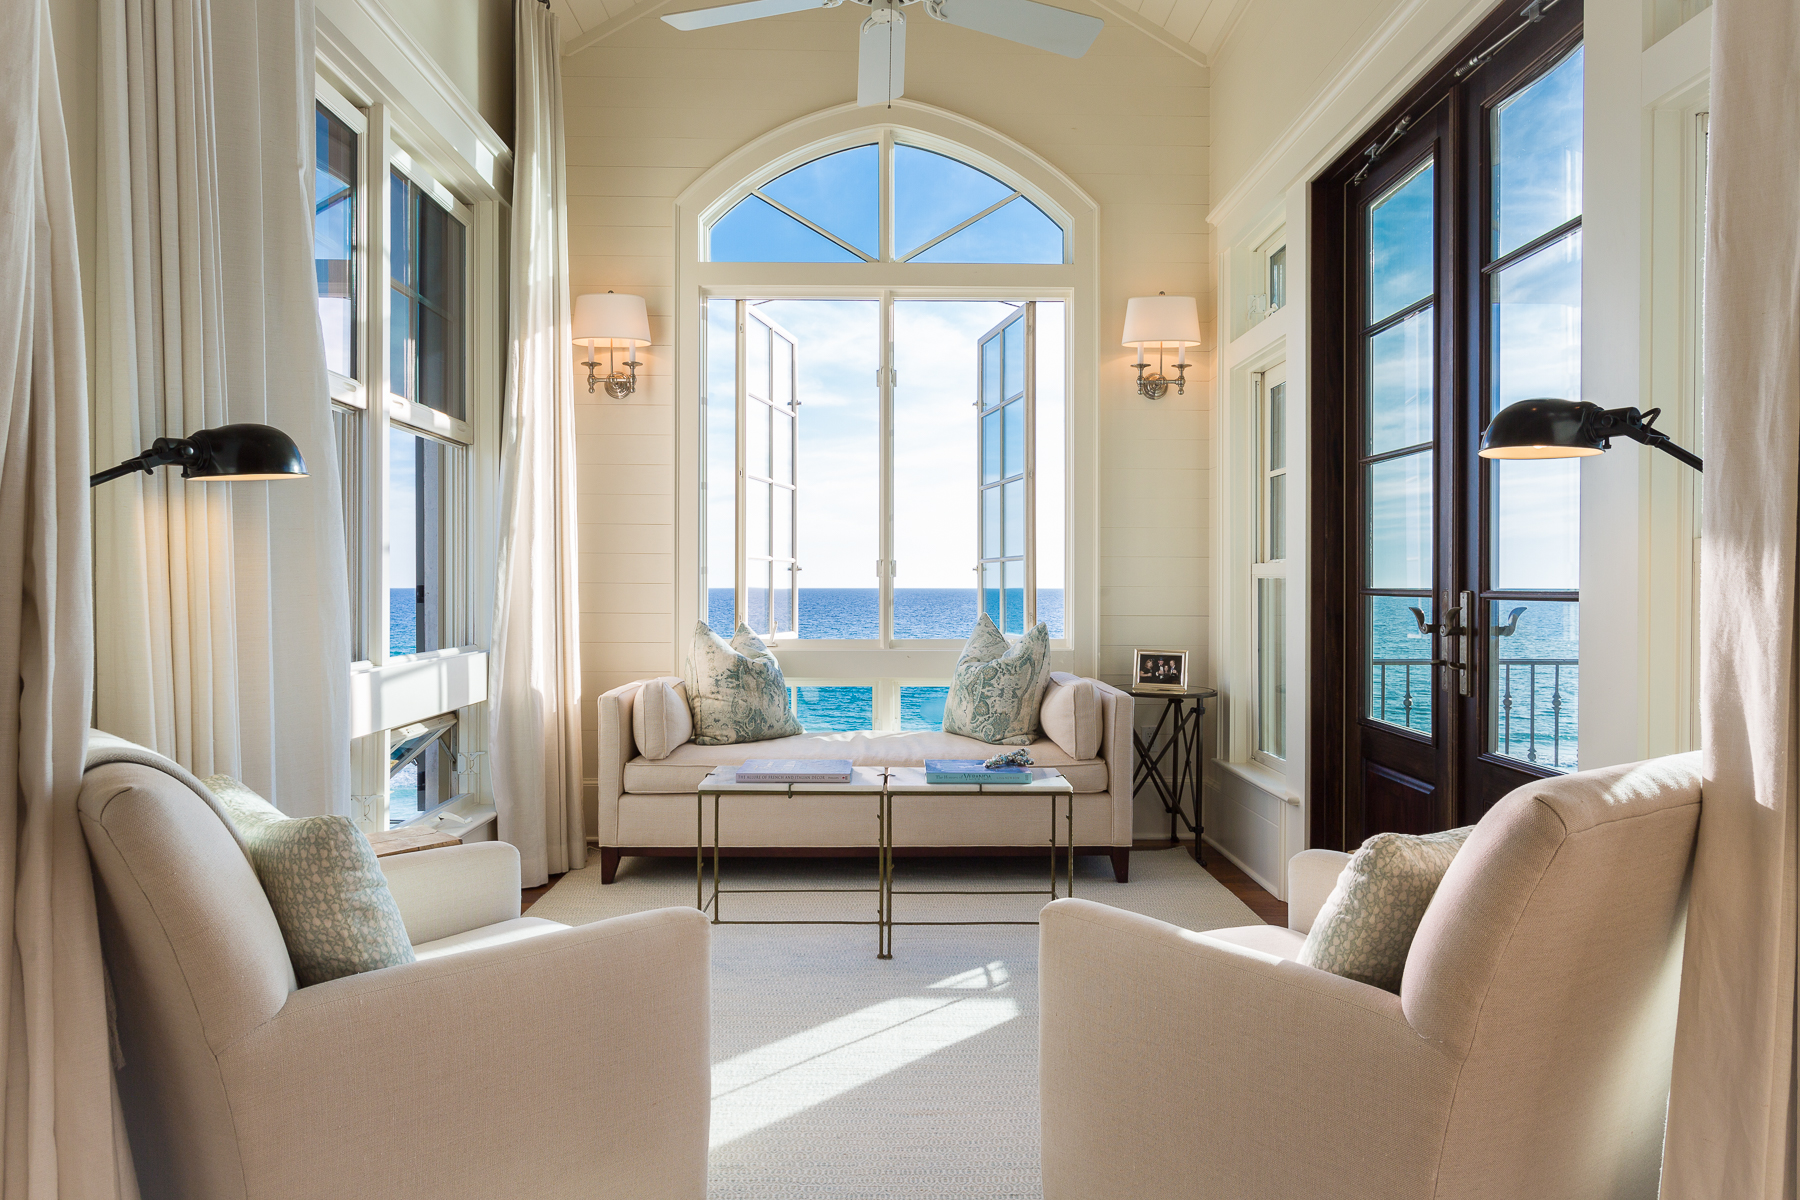 Single Family Home for Sale at TIMELESS AESTHETIC BRILLIANTLY DESIGNED WITH BREATHTAKING VIEWS IN MIND 76 E Saint Lucia Lane Santa Rosa Beach, Florida, 32459 United States